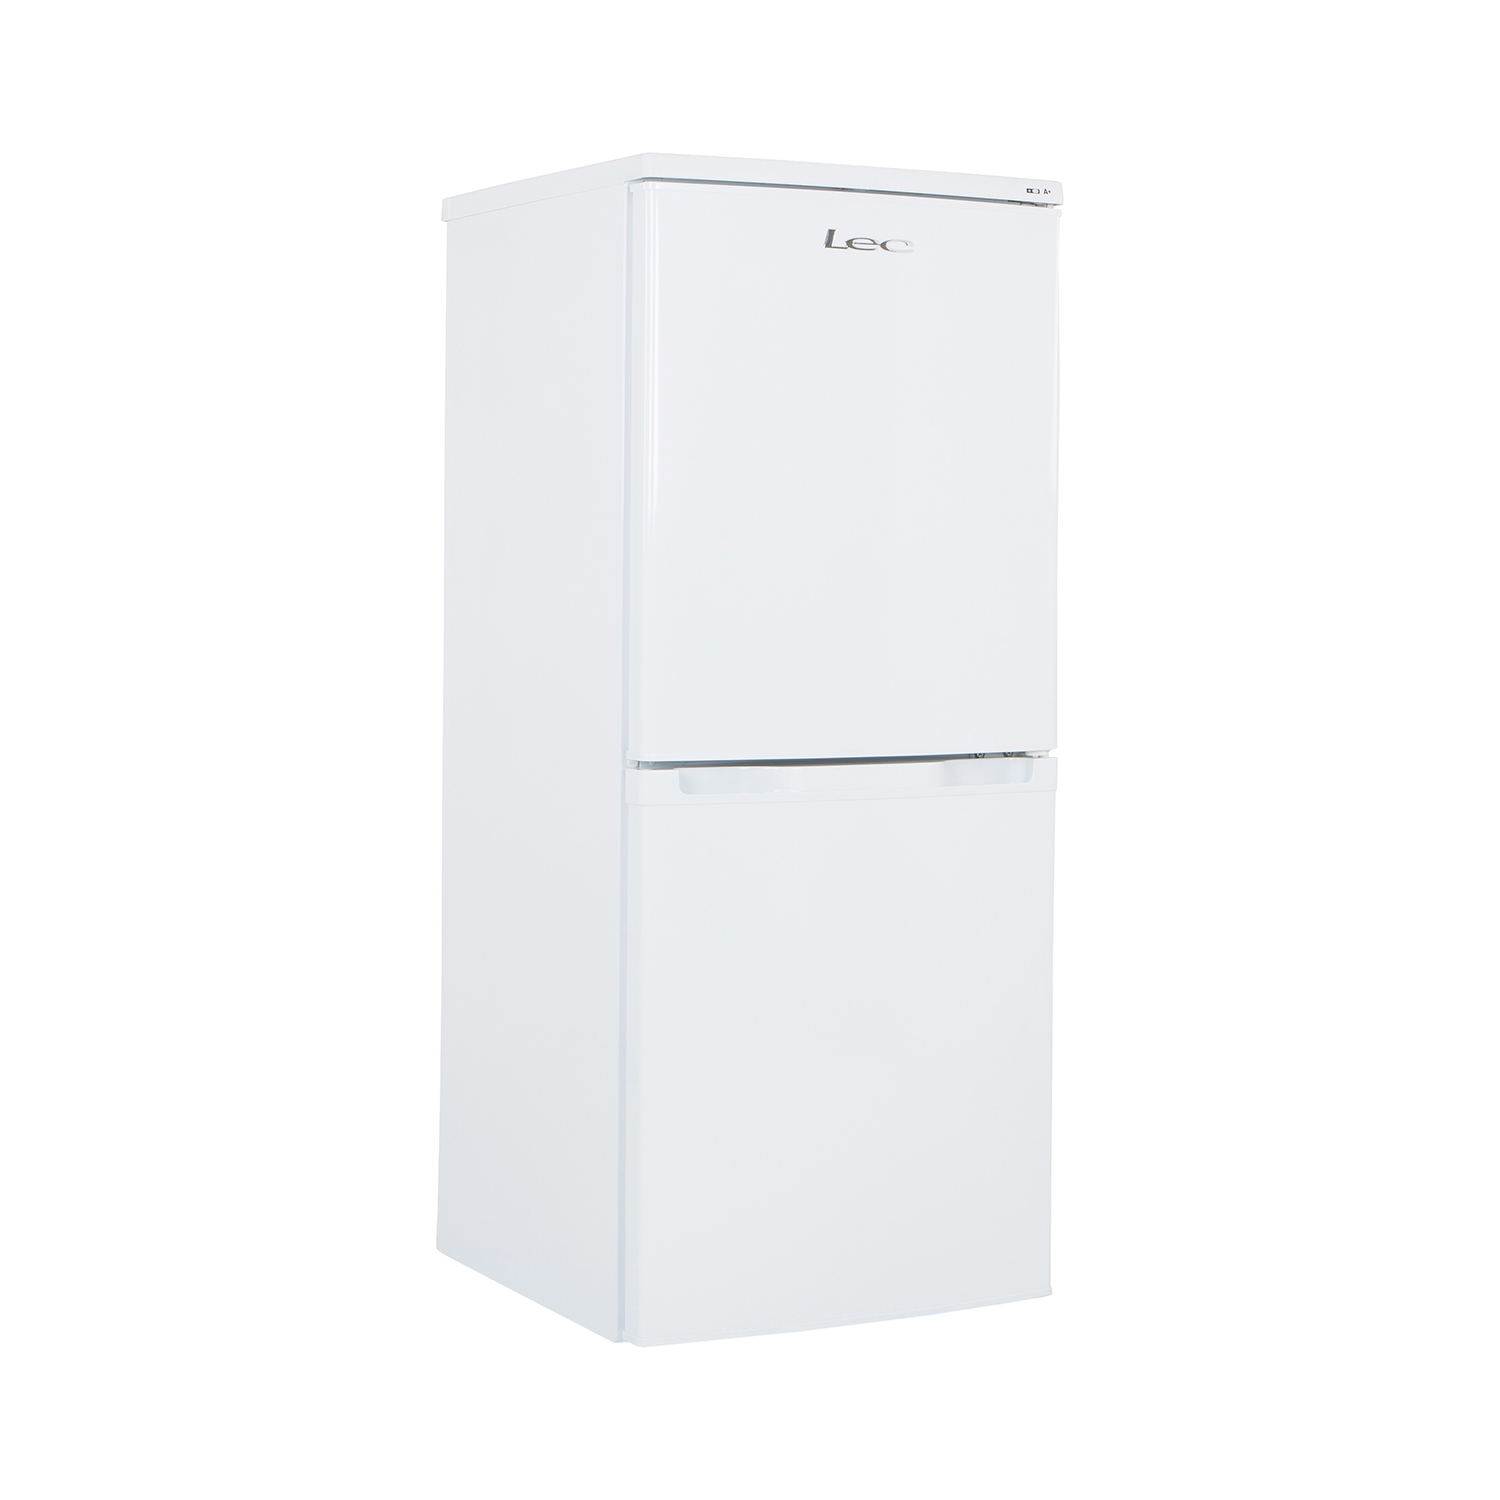 Lec 50cm Fridge Freezer - White - A+ Rated - 2